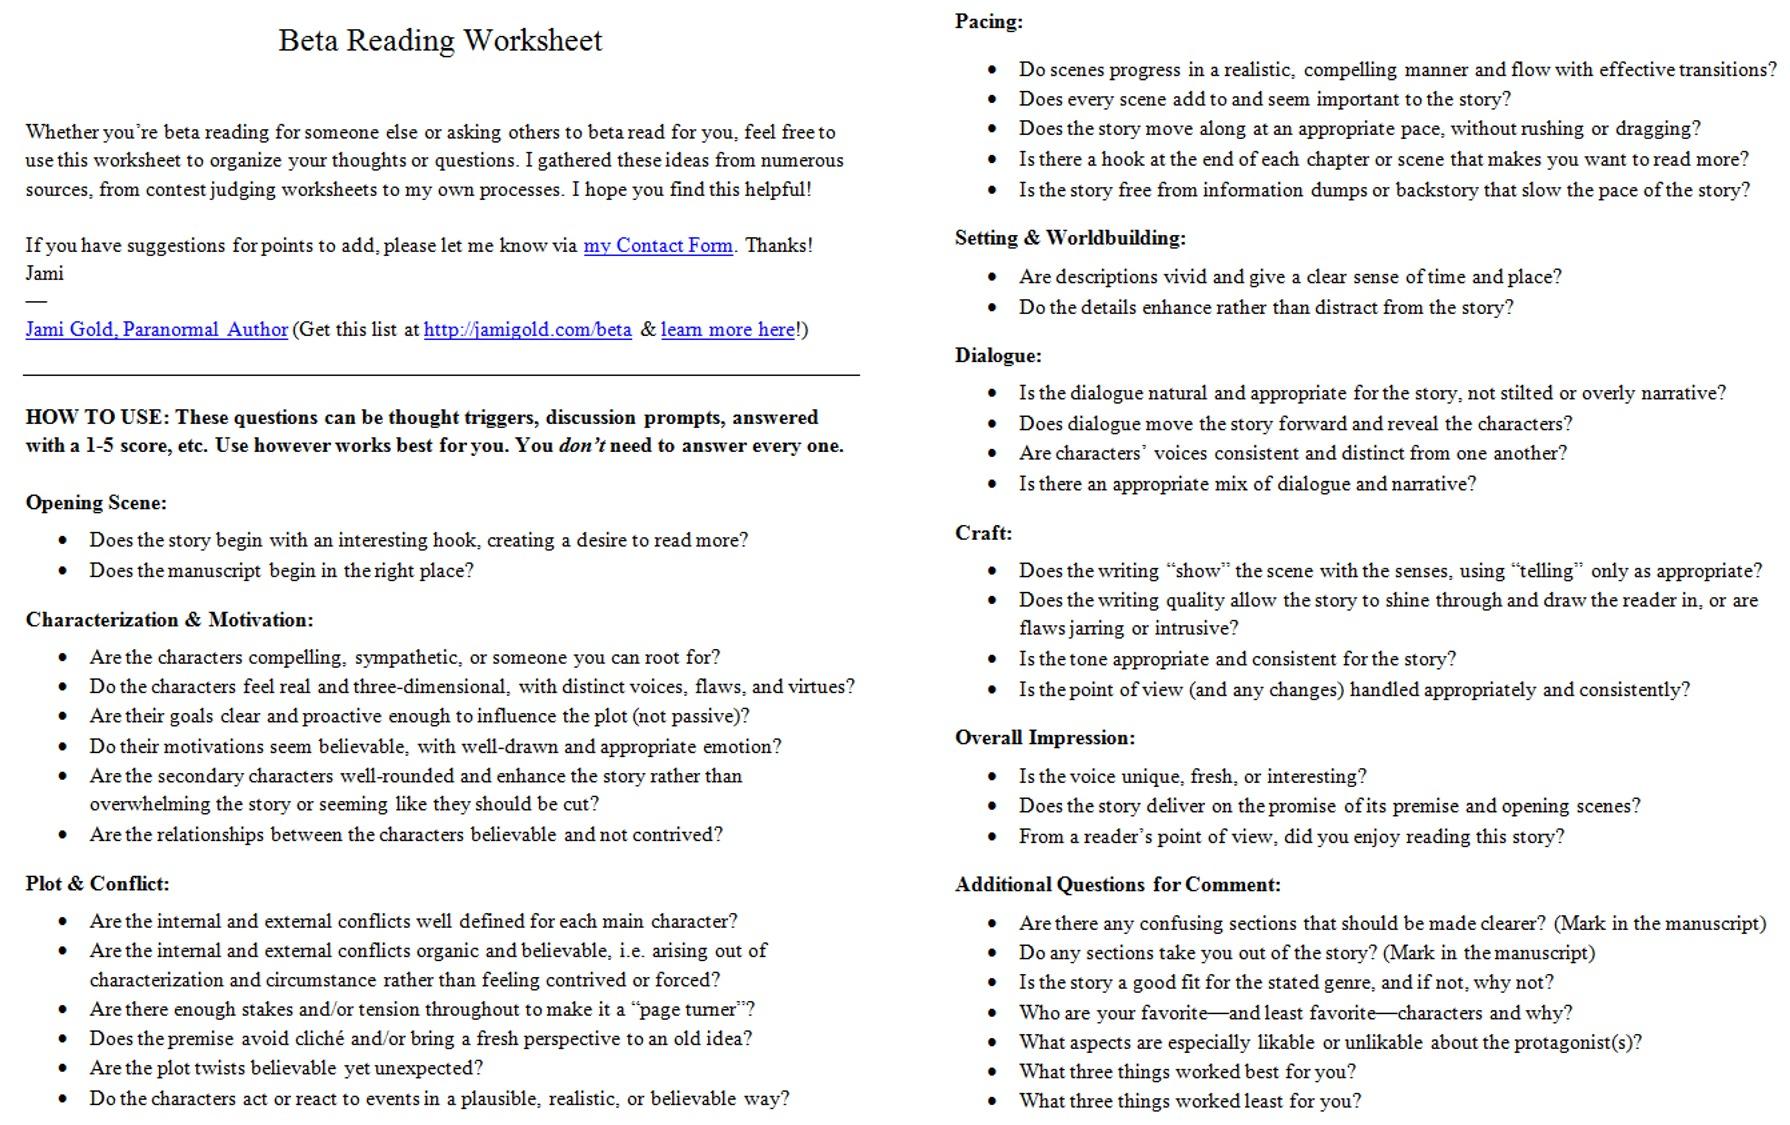 Weirdmailus  Fascinating Worksheets For Writers  Jami Gold Paranormal Author With Fair Screen Shot Of The Twopage Beta Reading Worksheet With Captivating Th Grade Estimation Worksheets Also Affix Worksheet In Addition Reading Worksheets Grade  And Geometric Figures Worksheet As Well As Allegory Worksheets Additionally Literal And Figurative Language Worksheets From Jamigoldcom With Weirdmailus  Fair Worksheets For Writers  Jami Gold Paranormal Author With Captivating Screen Shot Of The Twopage Beta Reading Worksheet And Fascinating Th Grade Estimation Worksheets Also Affix Worksheet In Addition Reading Worksheets Grade  From Jamigoldcom